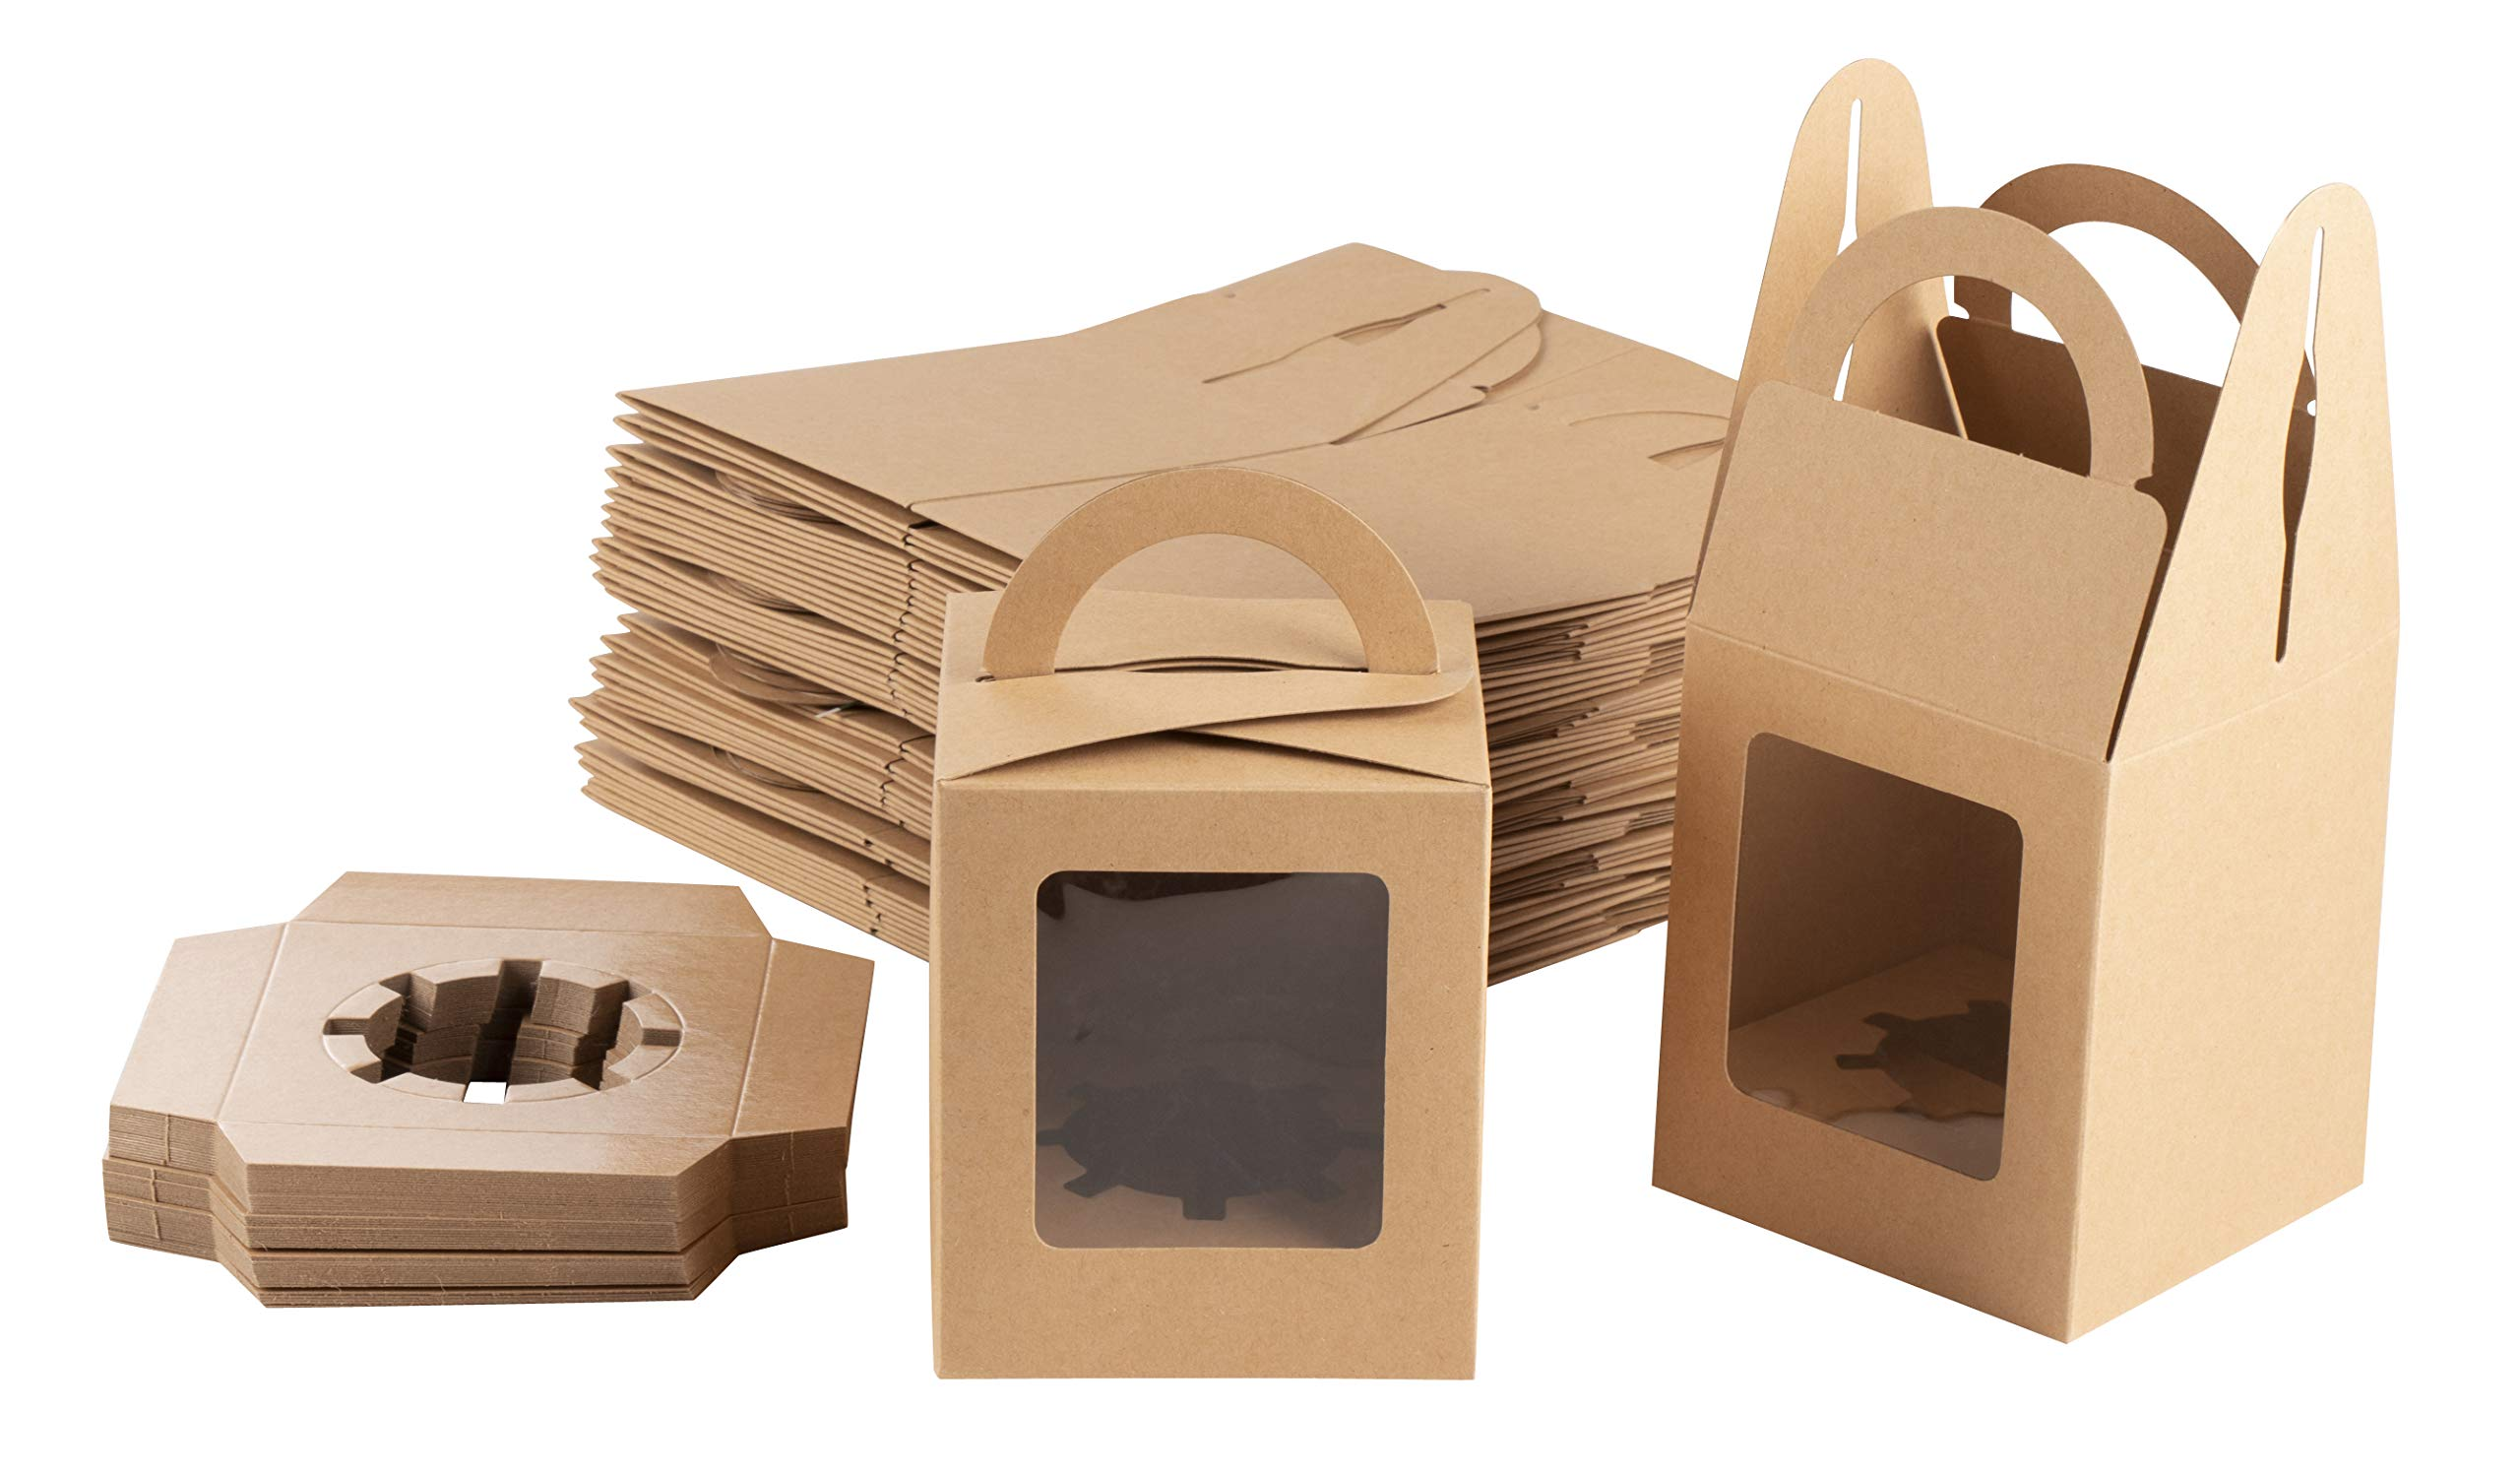 Kraft Paper Cupcake Boxes - 50-Pack Single Bakery Box Packaging with Clear Display Window, Insert, and Handle, Pastry Carrier Disposable Take-Out Container, Holds 1, Brown, 3.7 x 4.2 x 3.7 Inches by Juvale